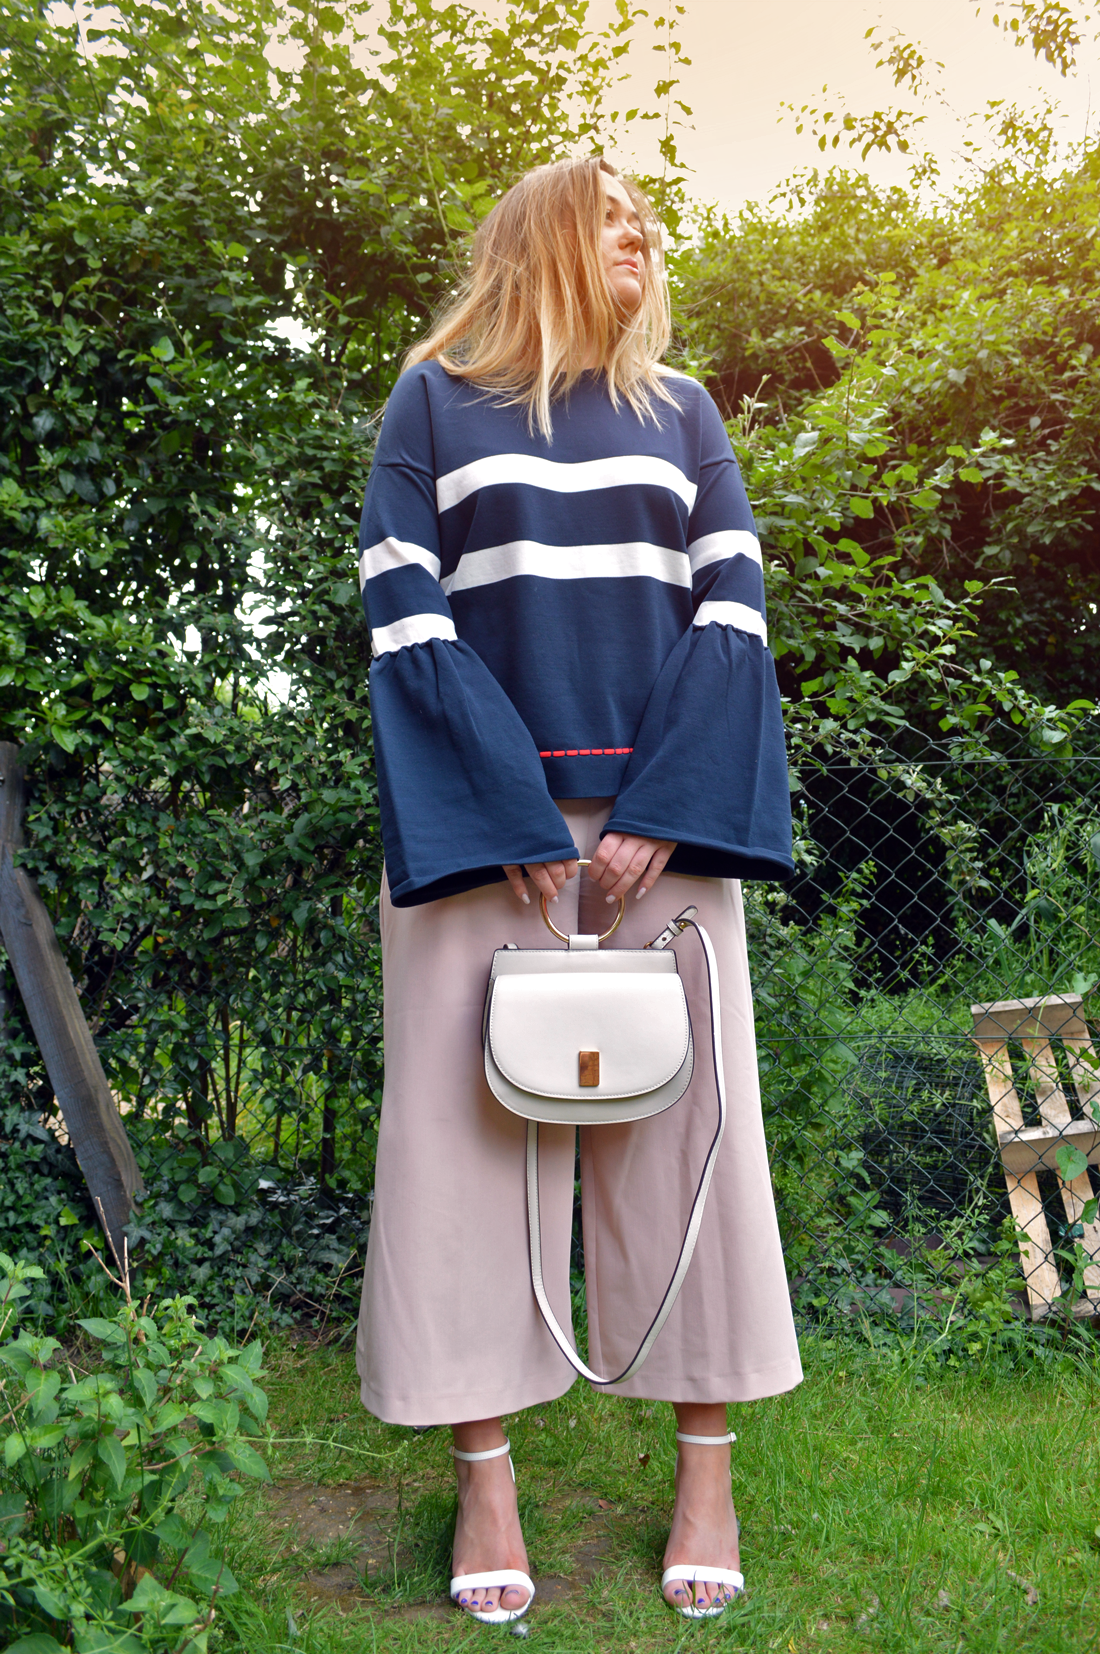 Hannah Gladwin wearing Asos nude culottes with side splits, with barely there white heeled sandals, with an over-sized navy knitted jumper with large sleeves, holding a cream Mango bag by its gold ring.